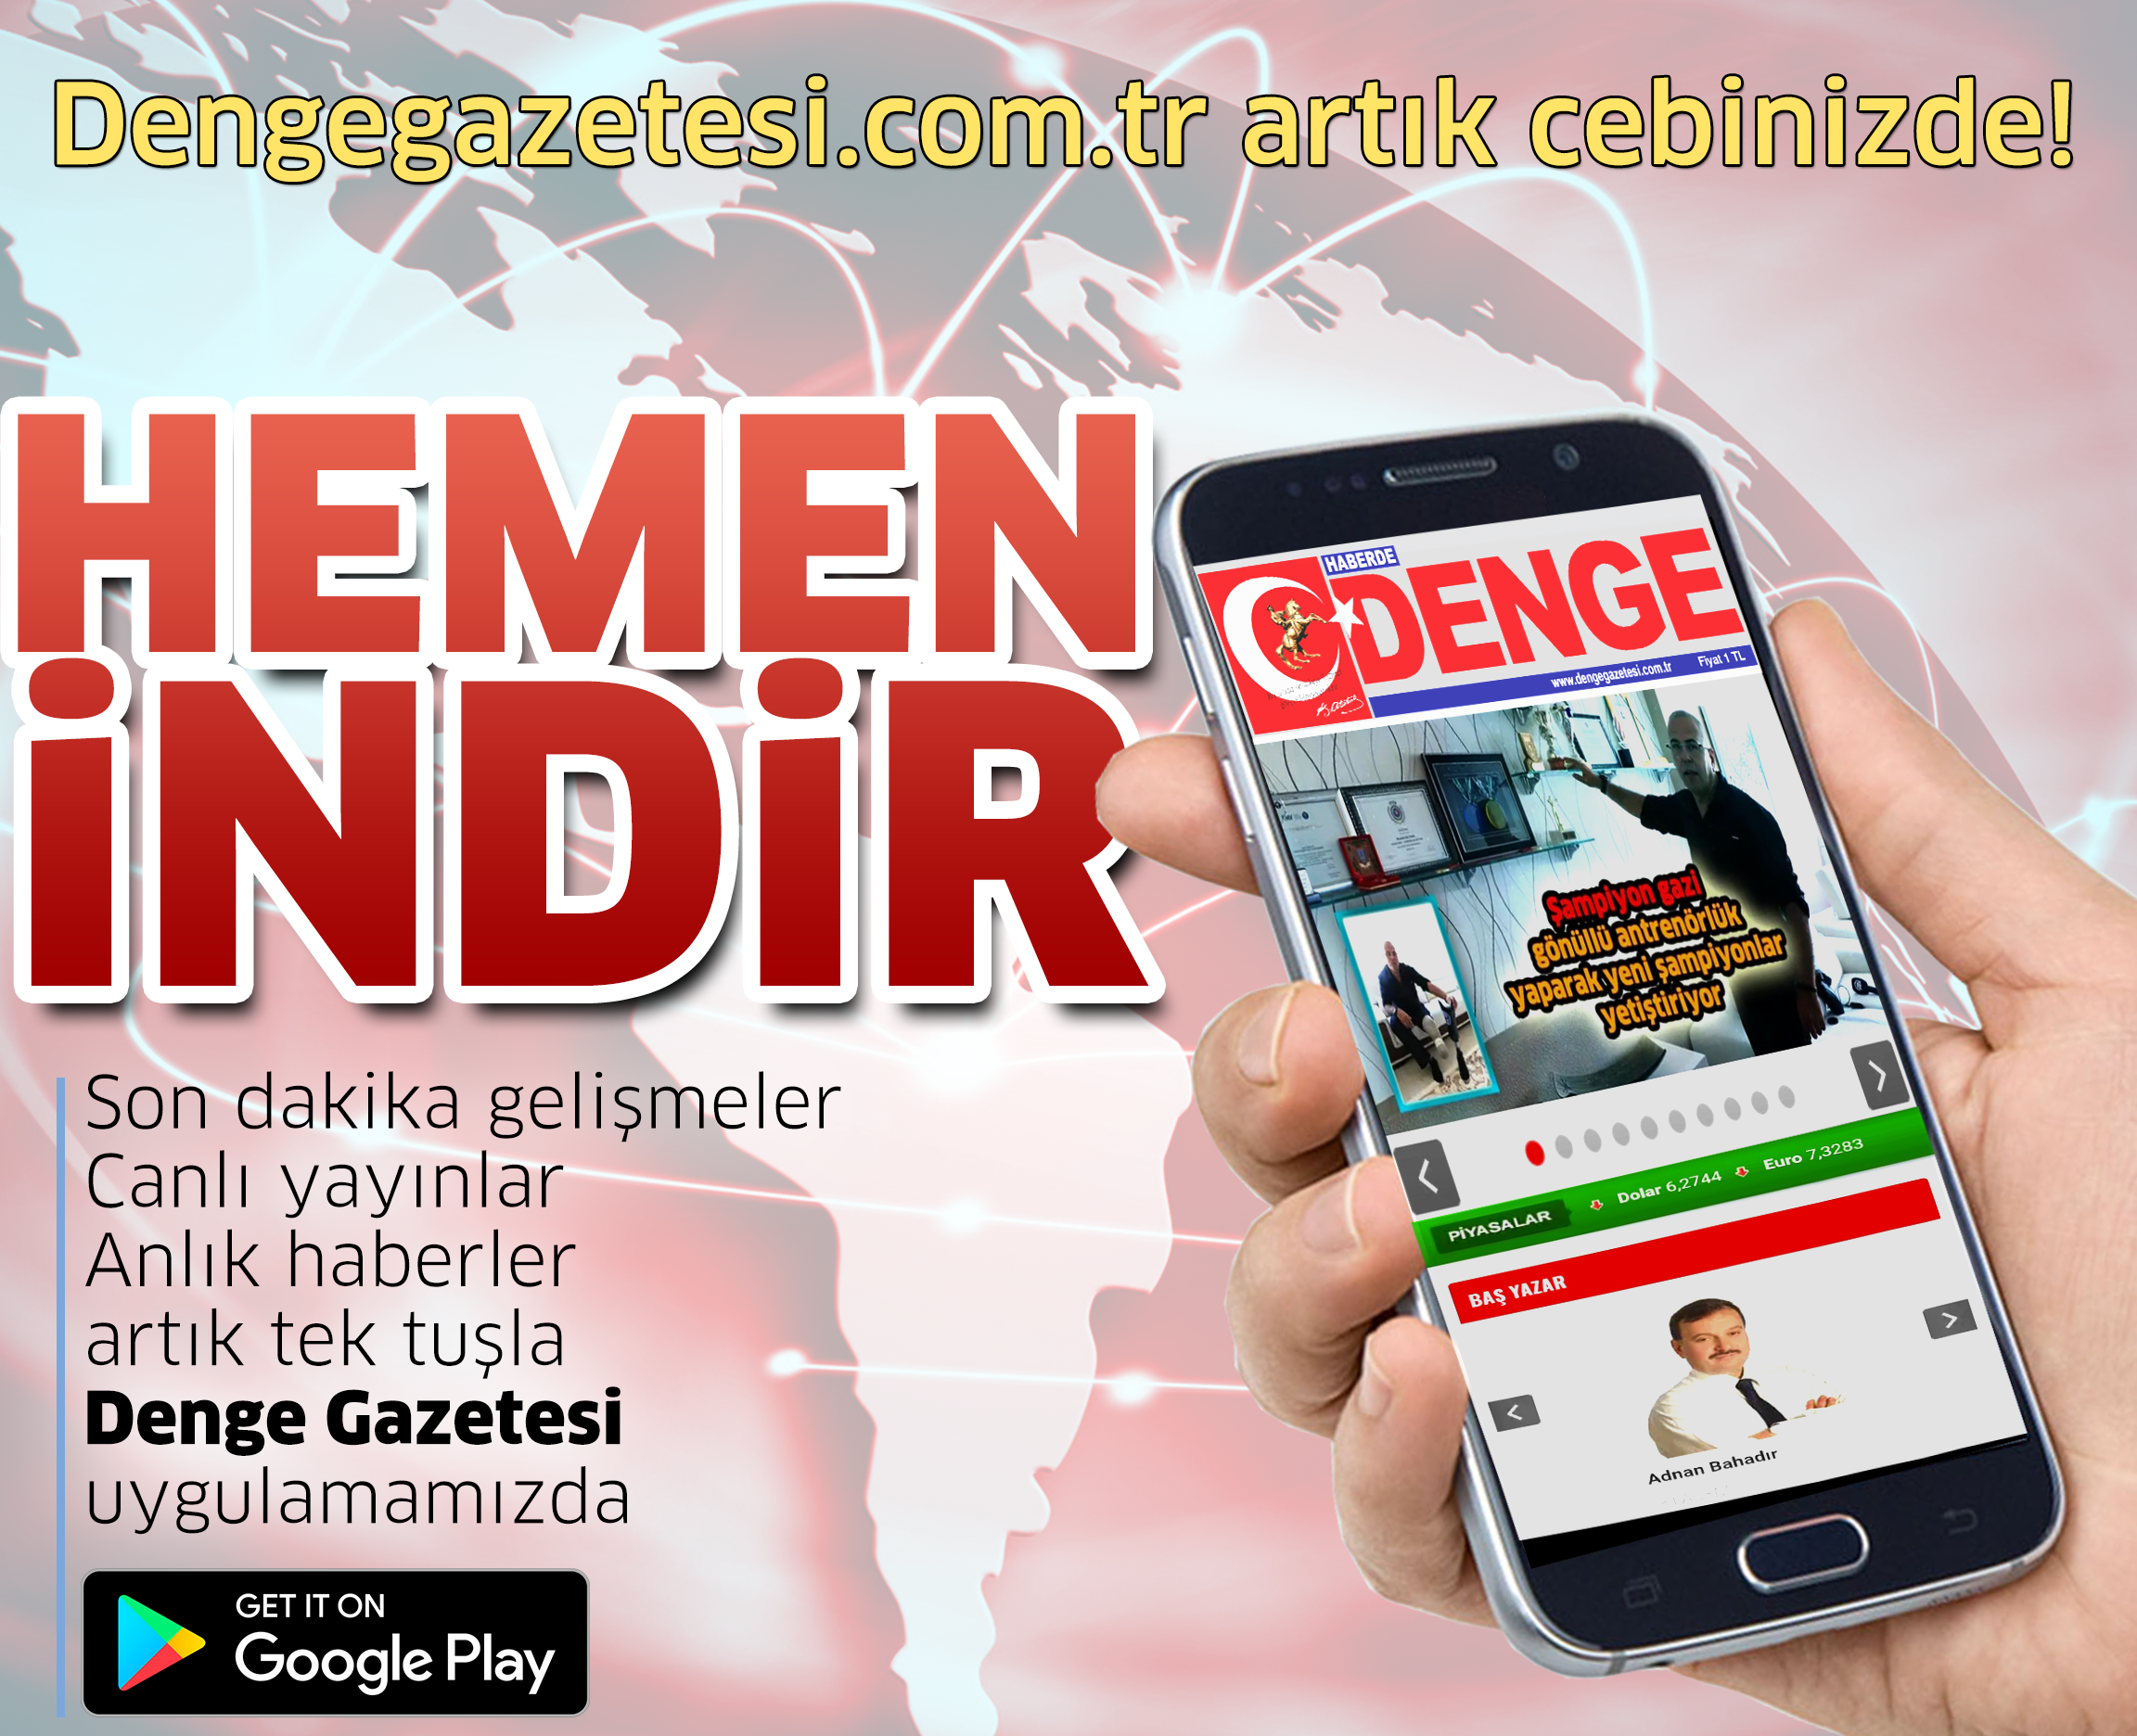 Dengegazetesi.com.tr Artık Cebinizde